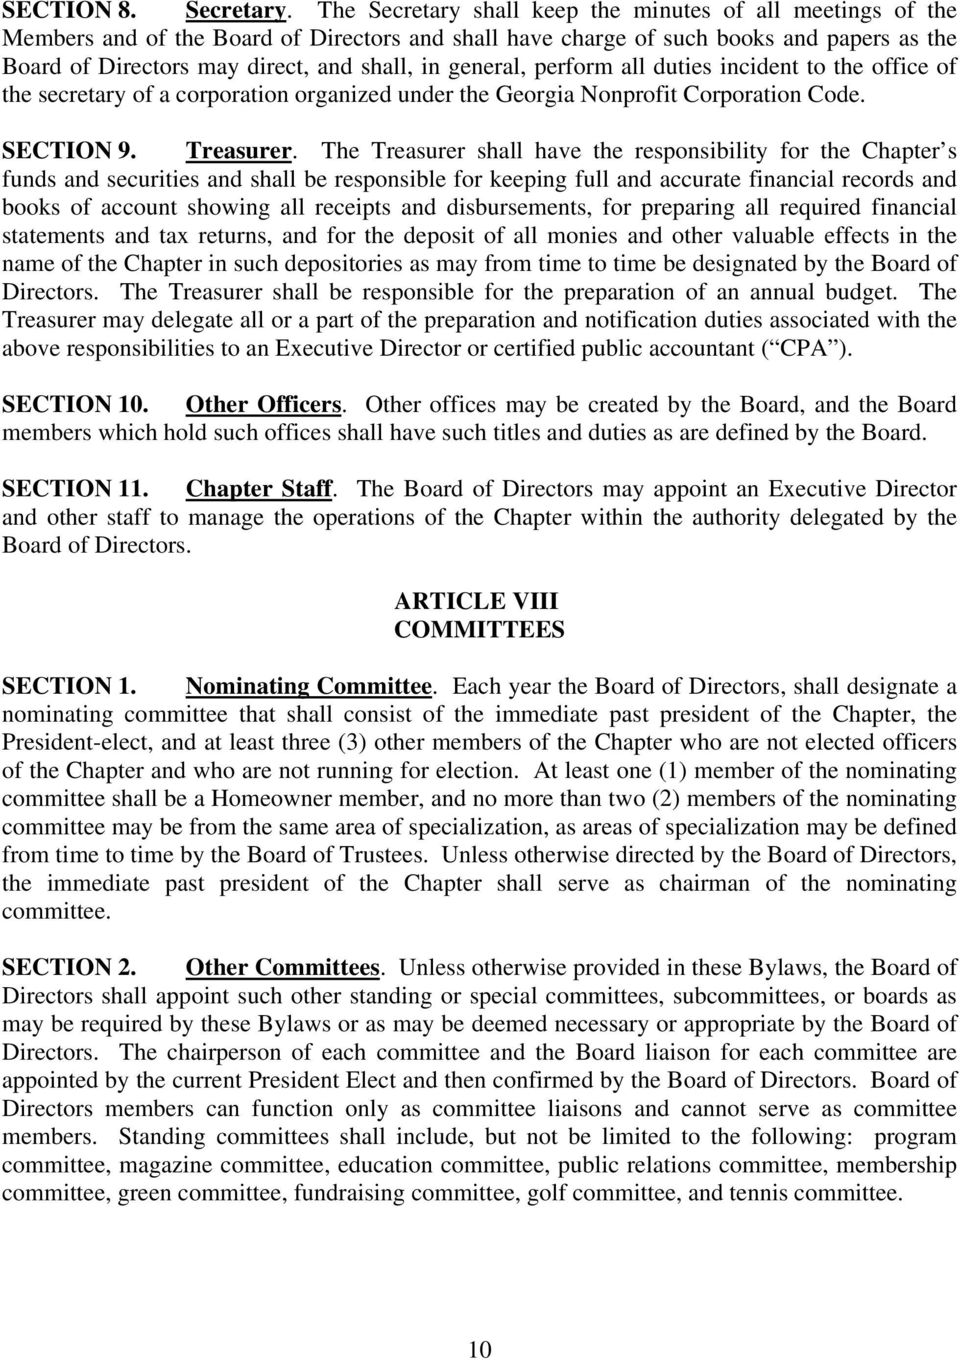 general, perform all duties incident to the office of the secretary of a corporation organized under the Georgia Nonprofit Corporation Code. SECTION 9. Treasurer.